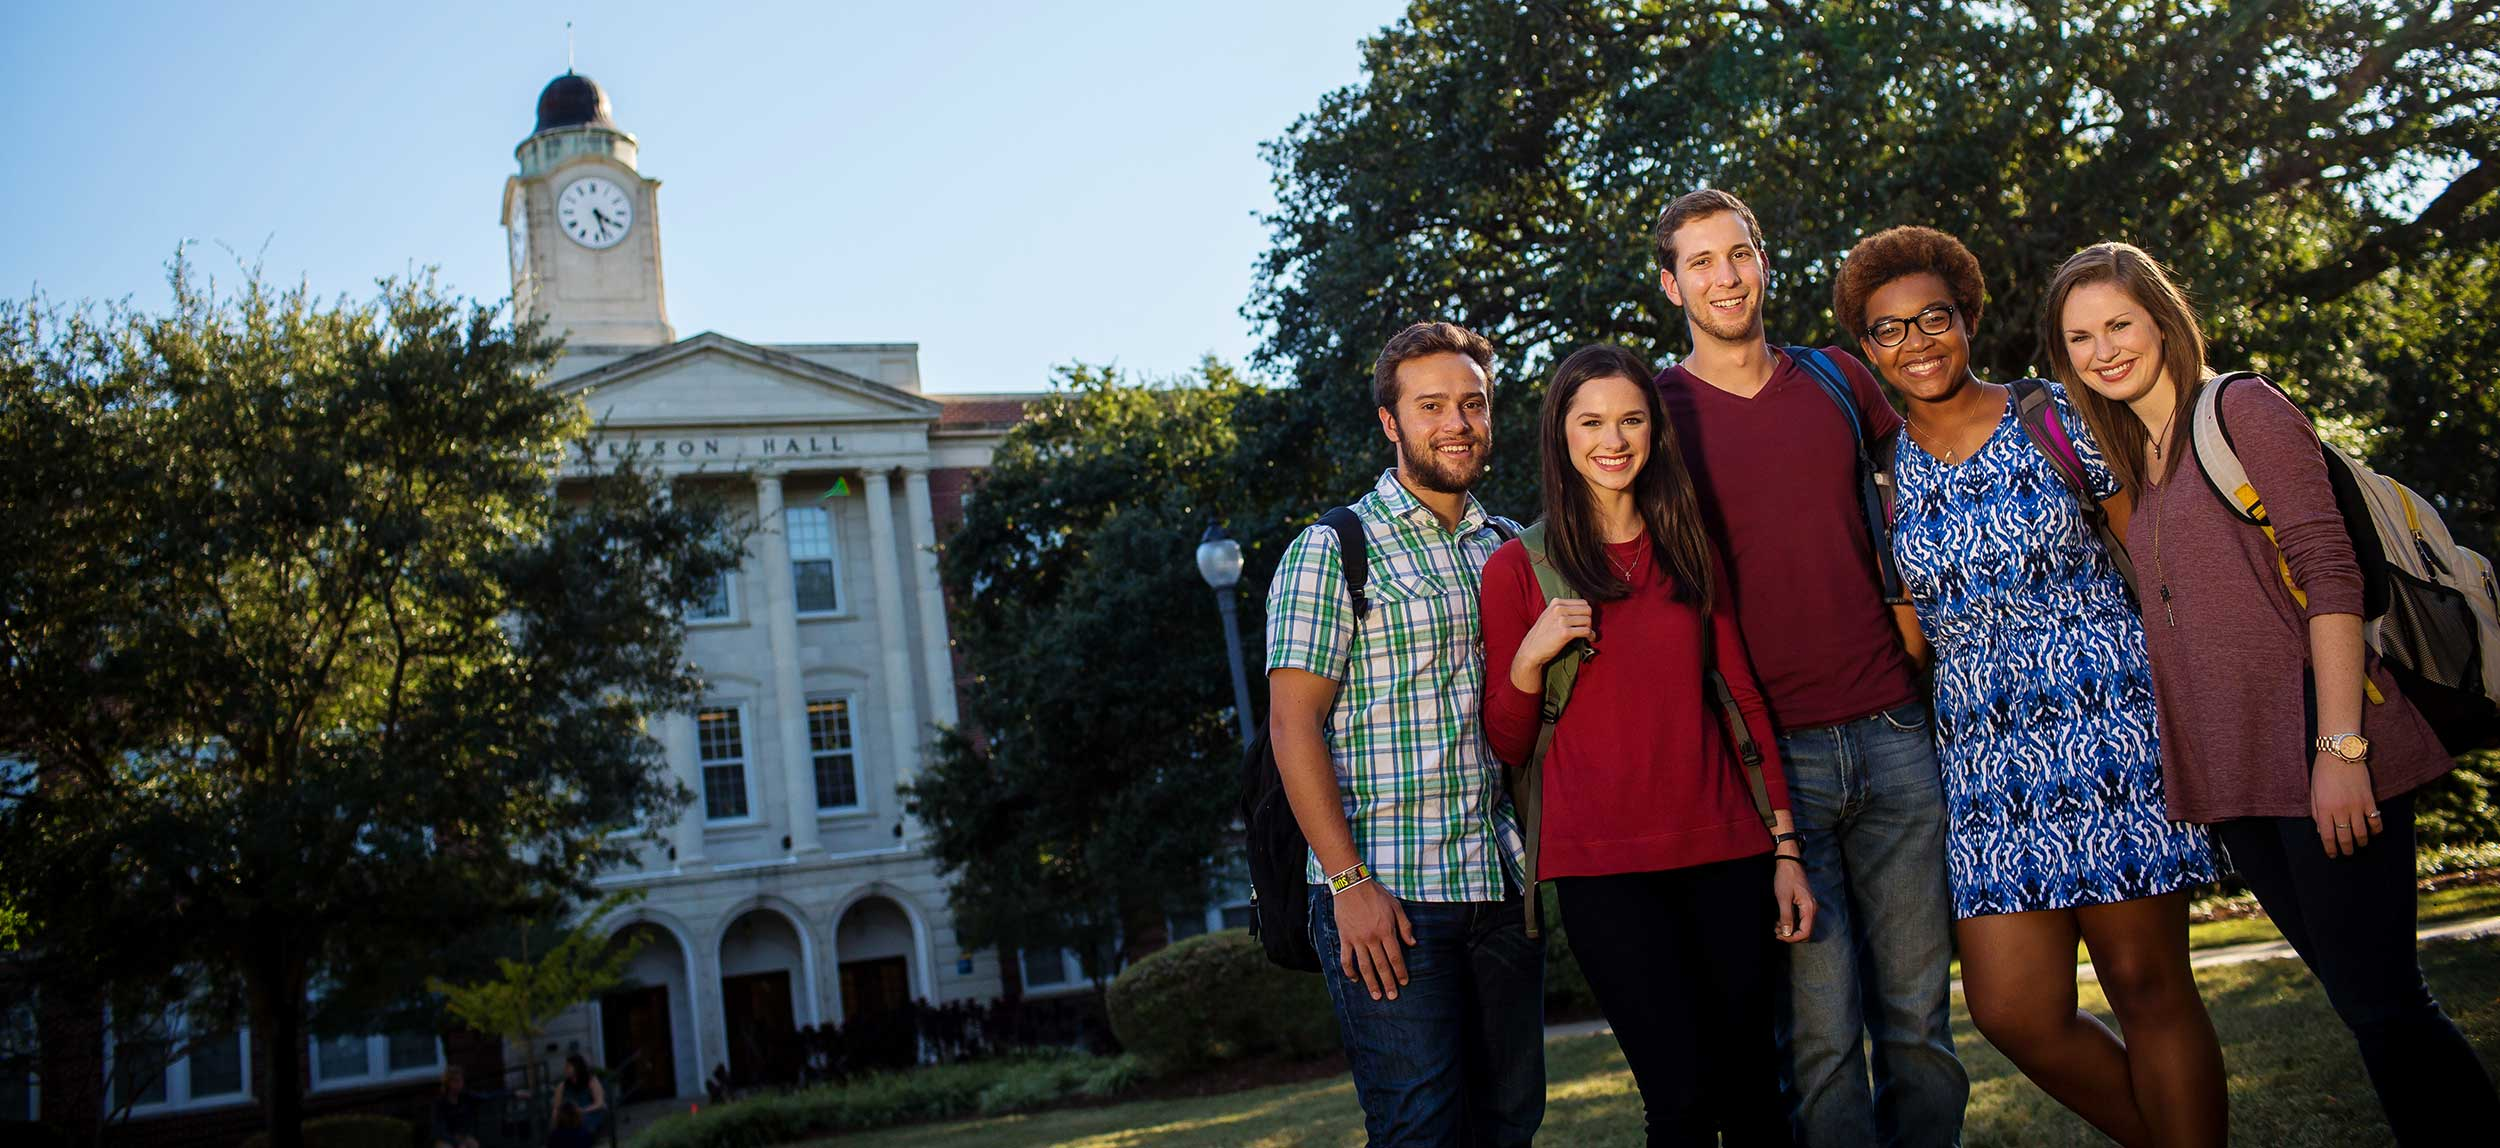 Five students posing for a photo on the Quad in front of Nelson Hall on Mississippi College's campus.